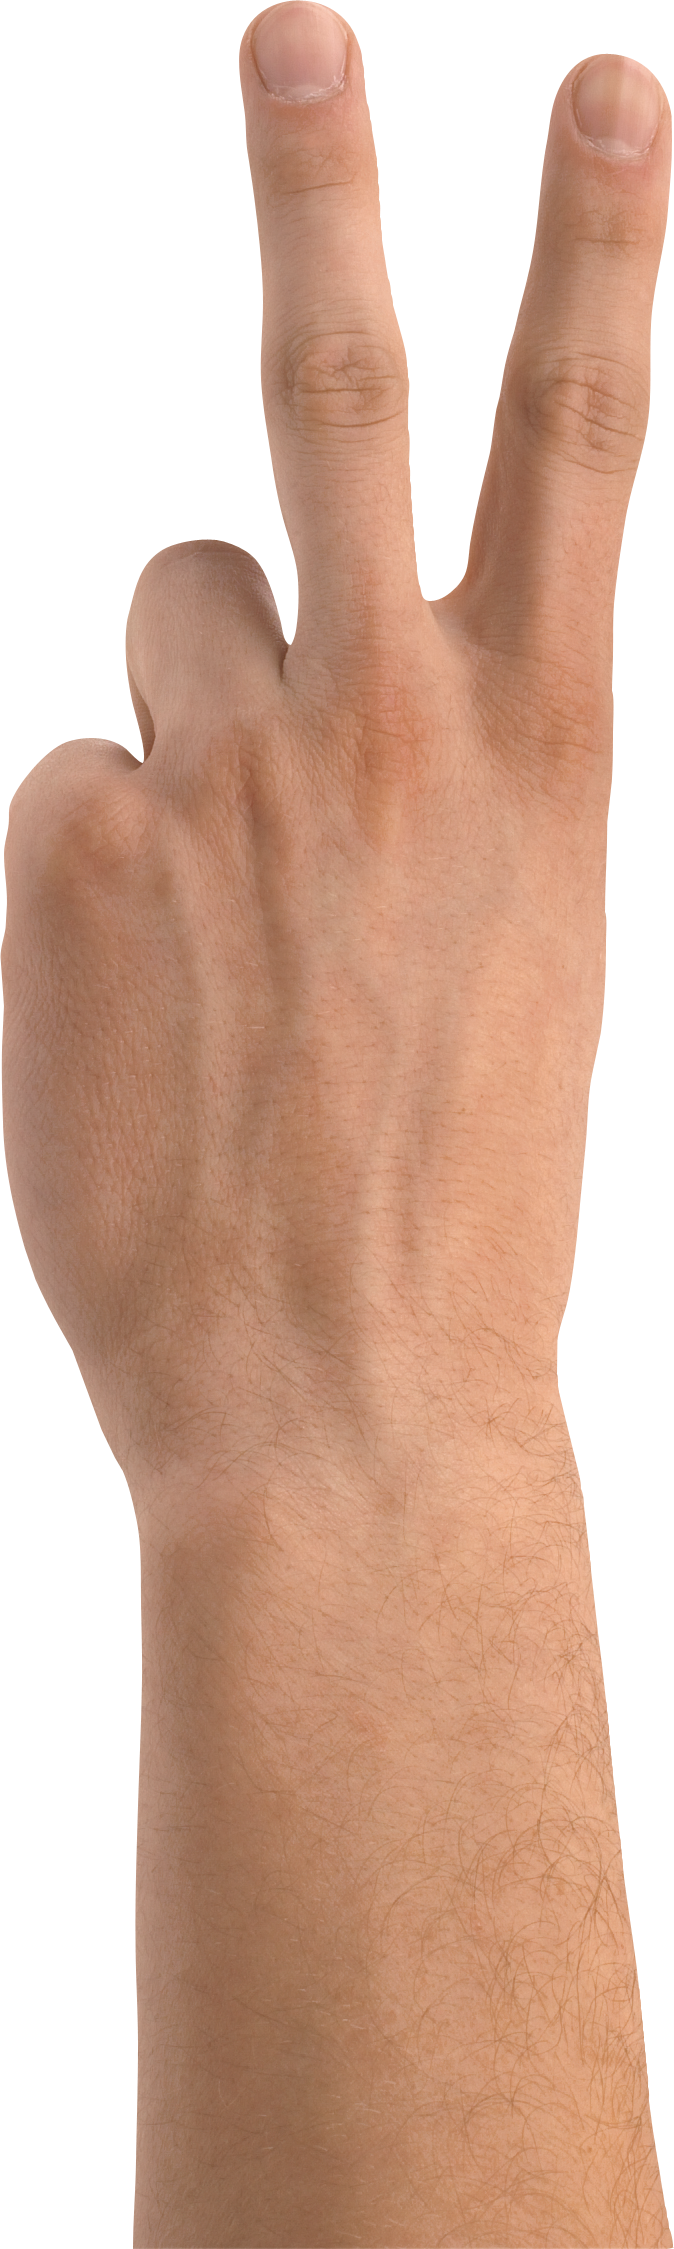 Two hands png. Transparent images pluspng hand